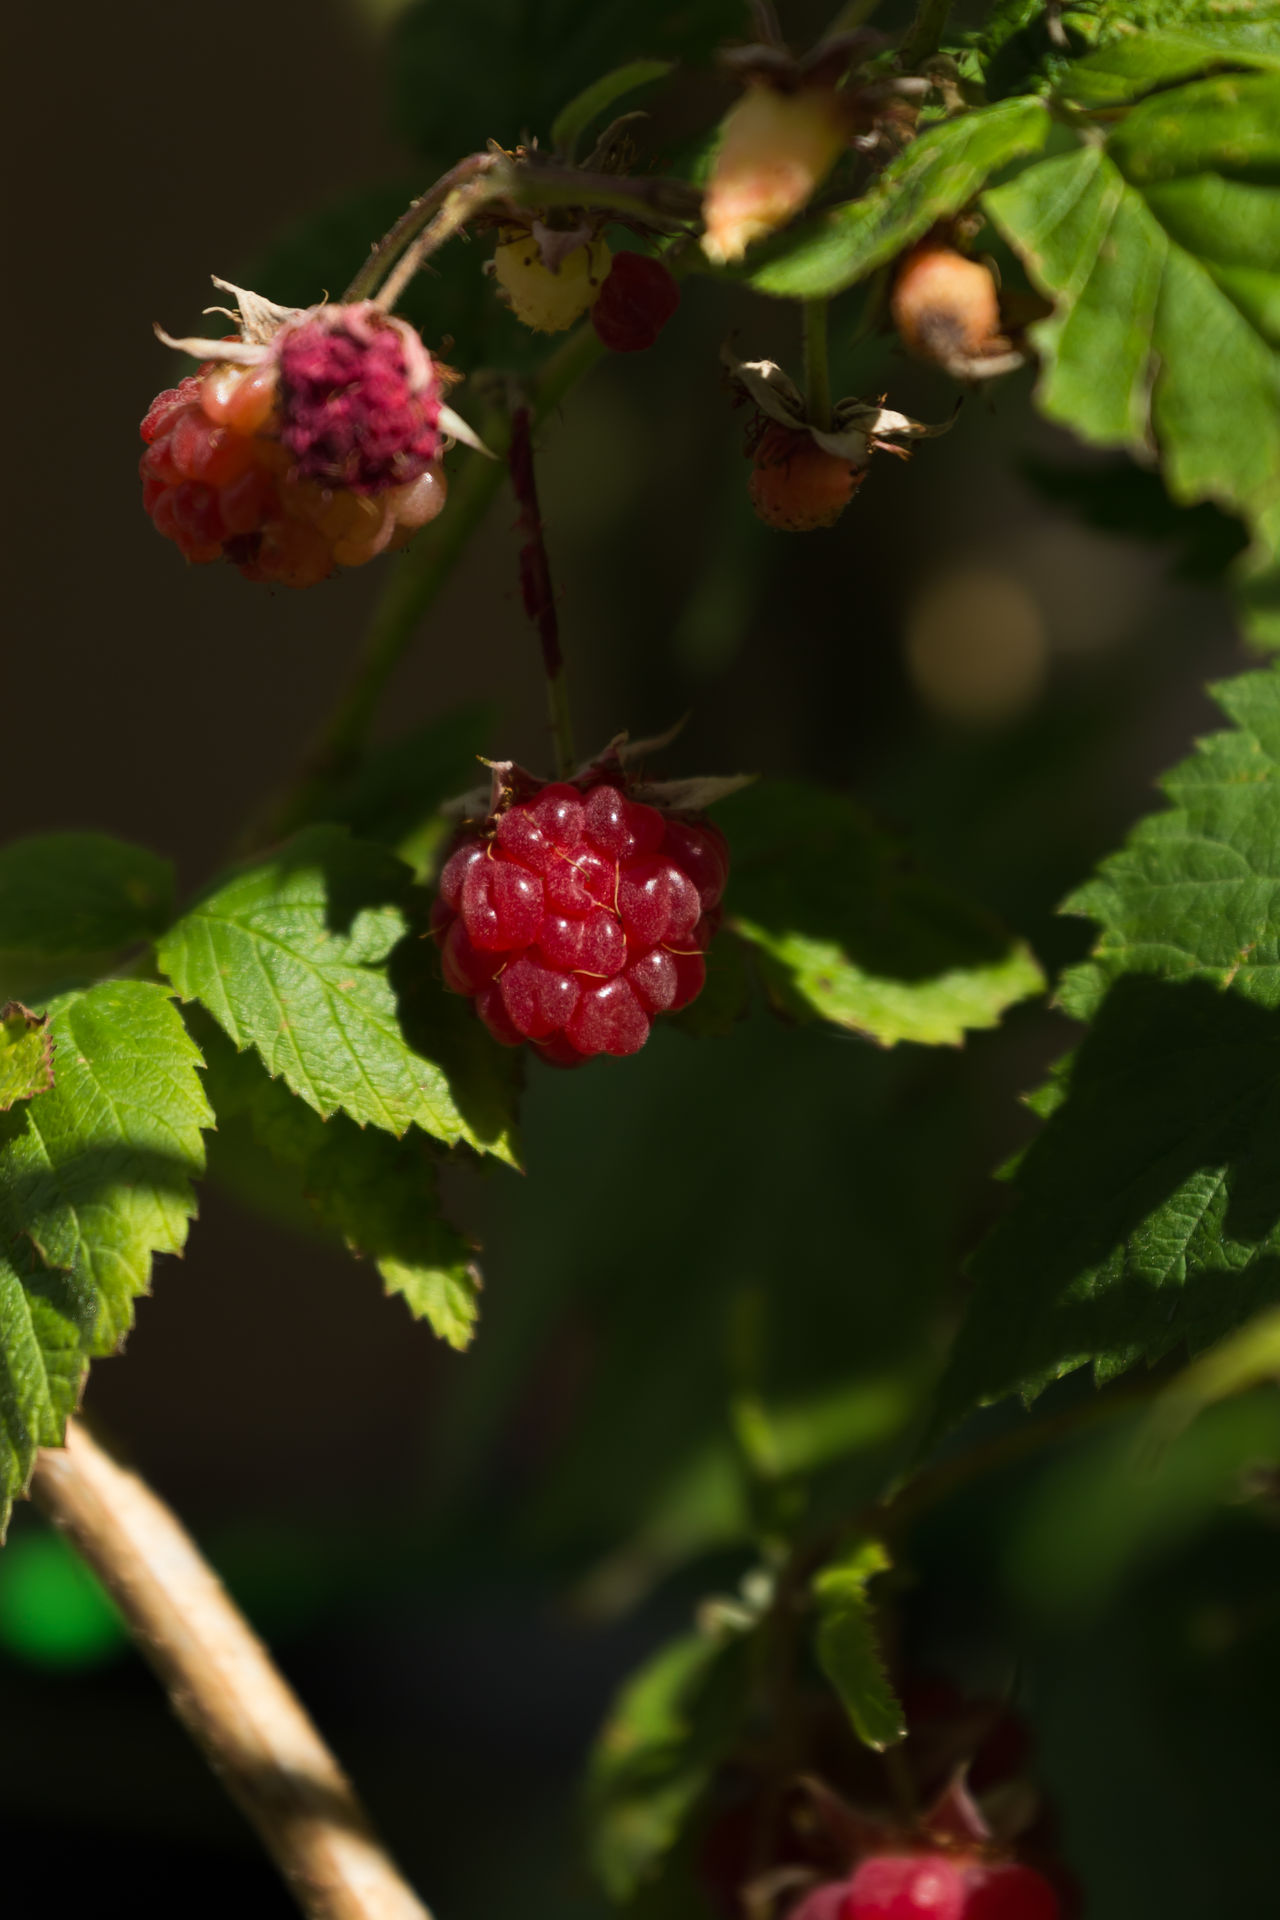 Raspberries growing in the garden. Beauty In Nature Branch Close-up Day Focus On Foreground Food Food And Drink Freshness Fruit Gardening Green Color Growing Growth Healthy Eating Home Grown Juicy Fruit Leaf Nature No People Outdoors Plant Raspberries Red Summer Fruit